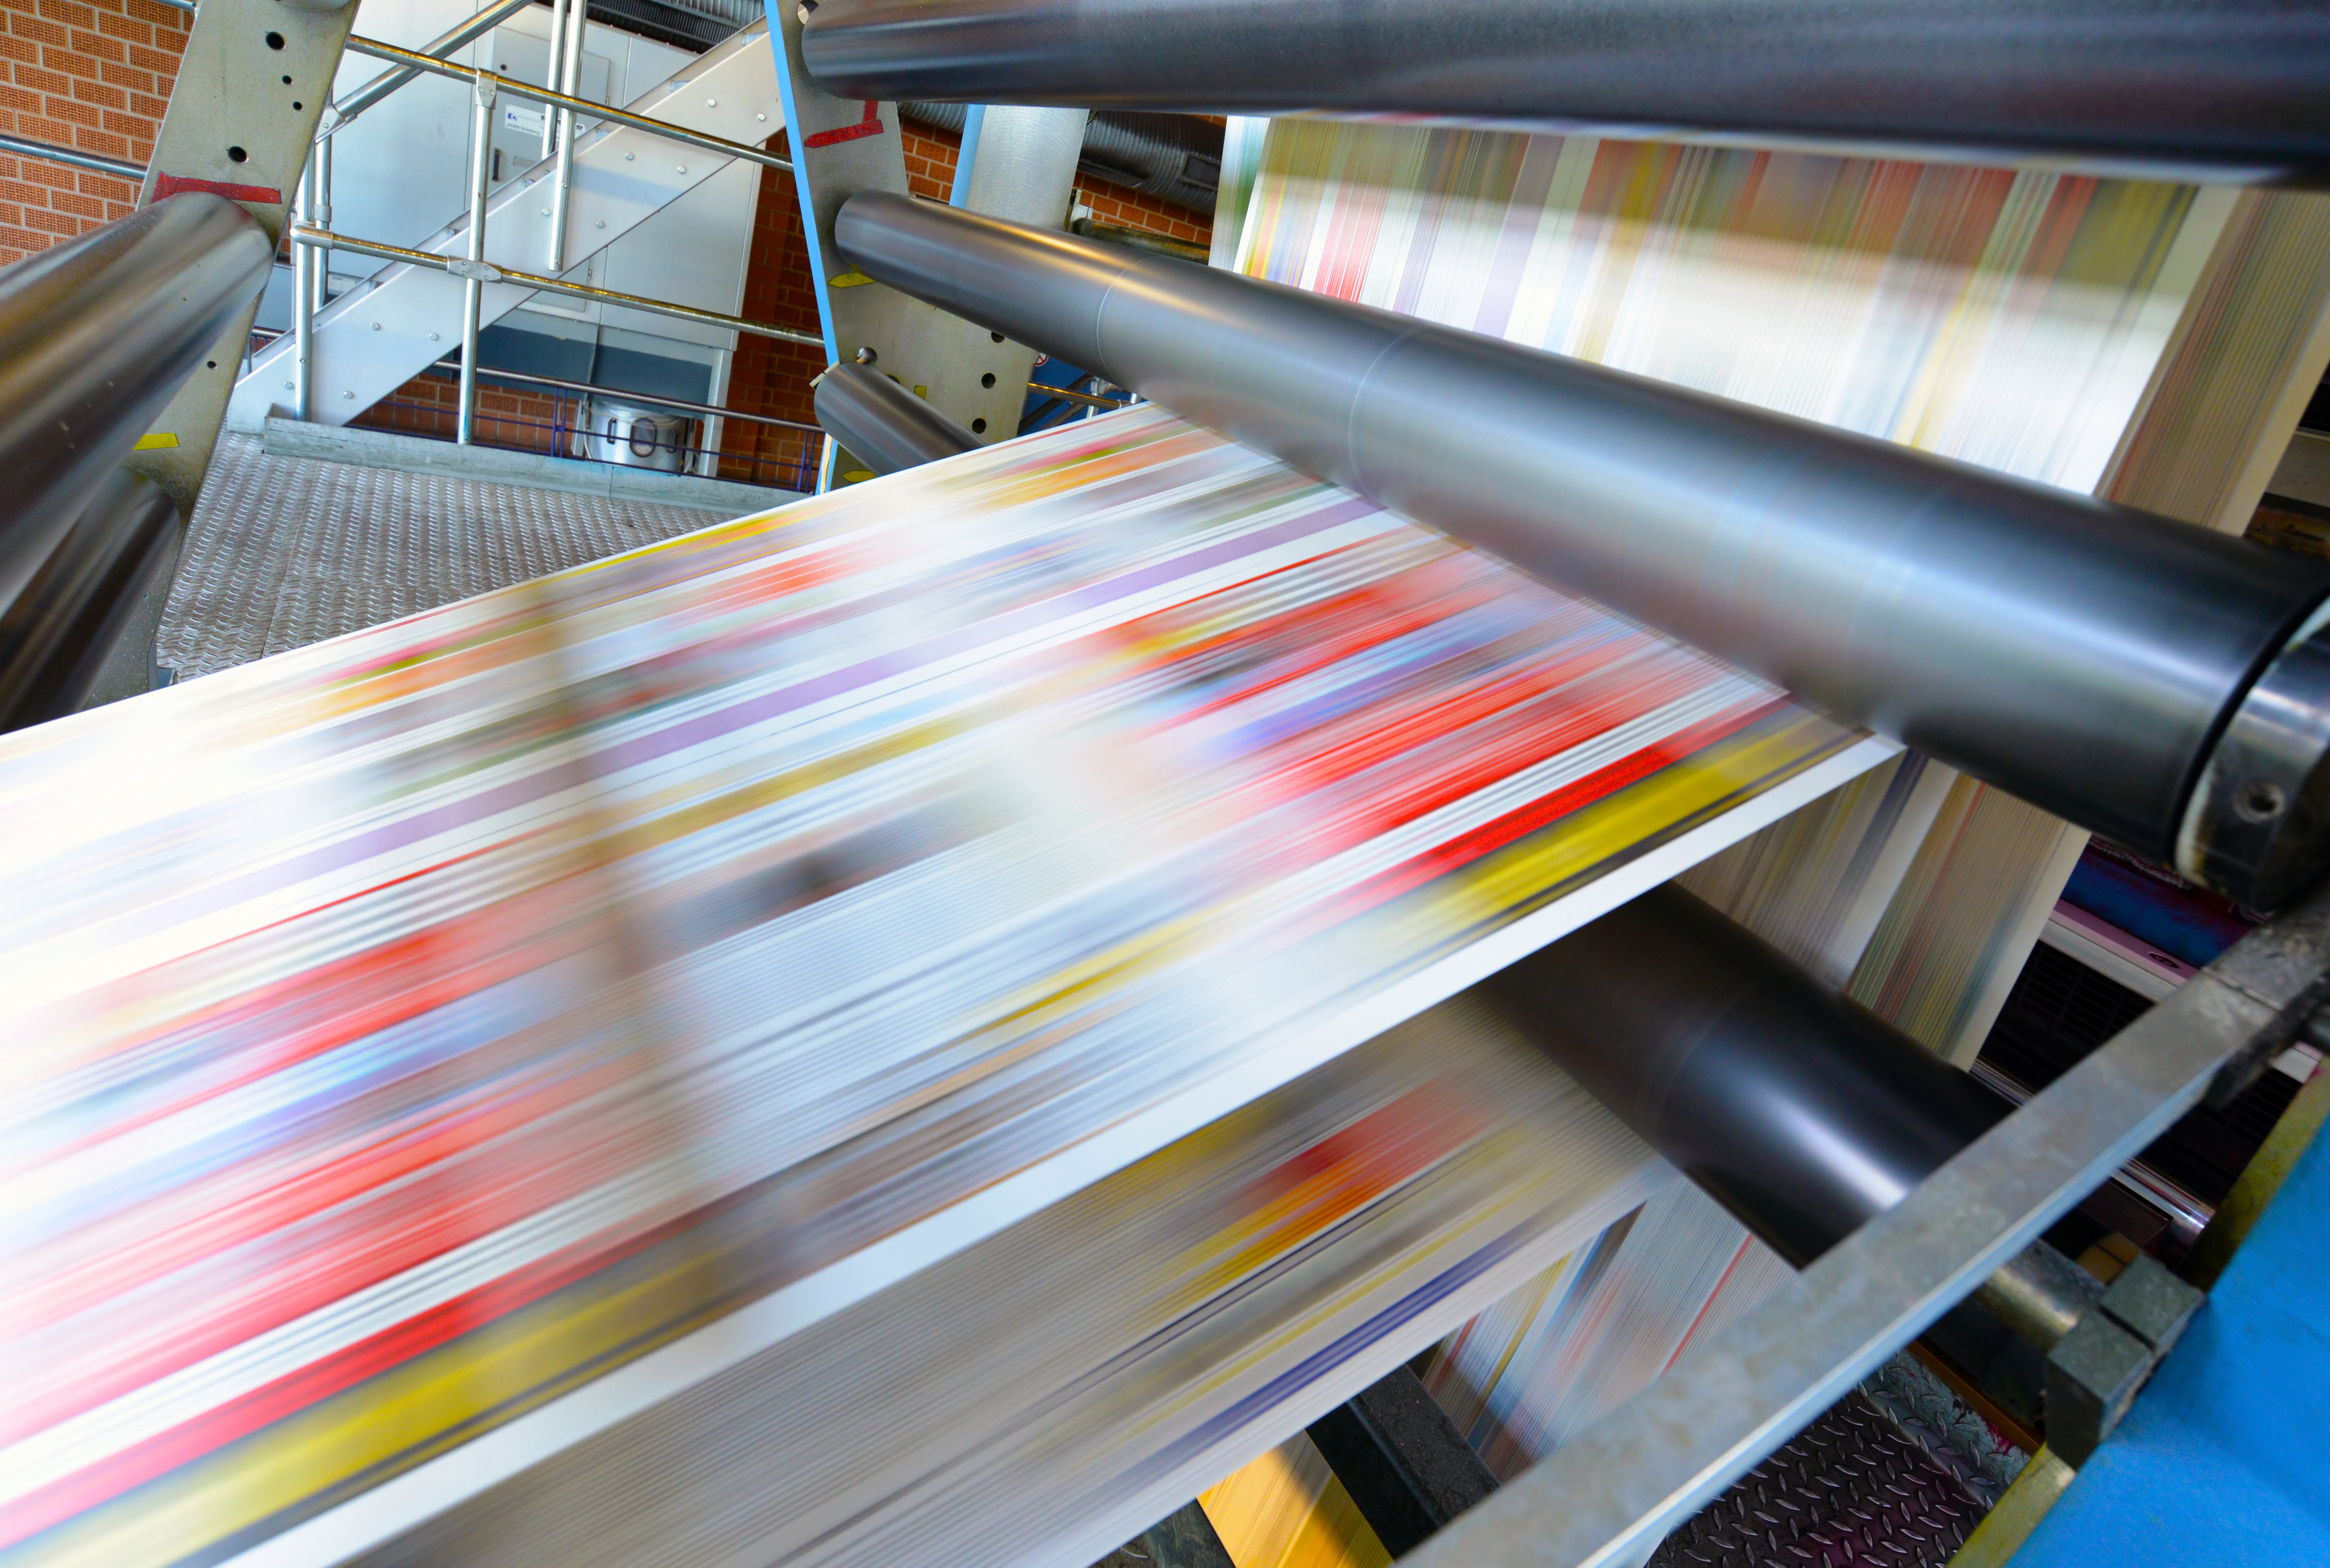 printing of coloured newspapers with an offset printing machine at a printing press